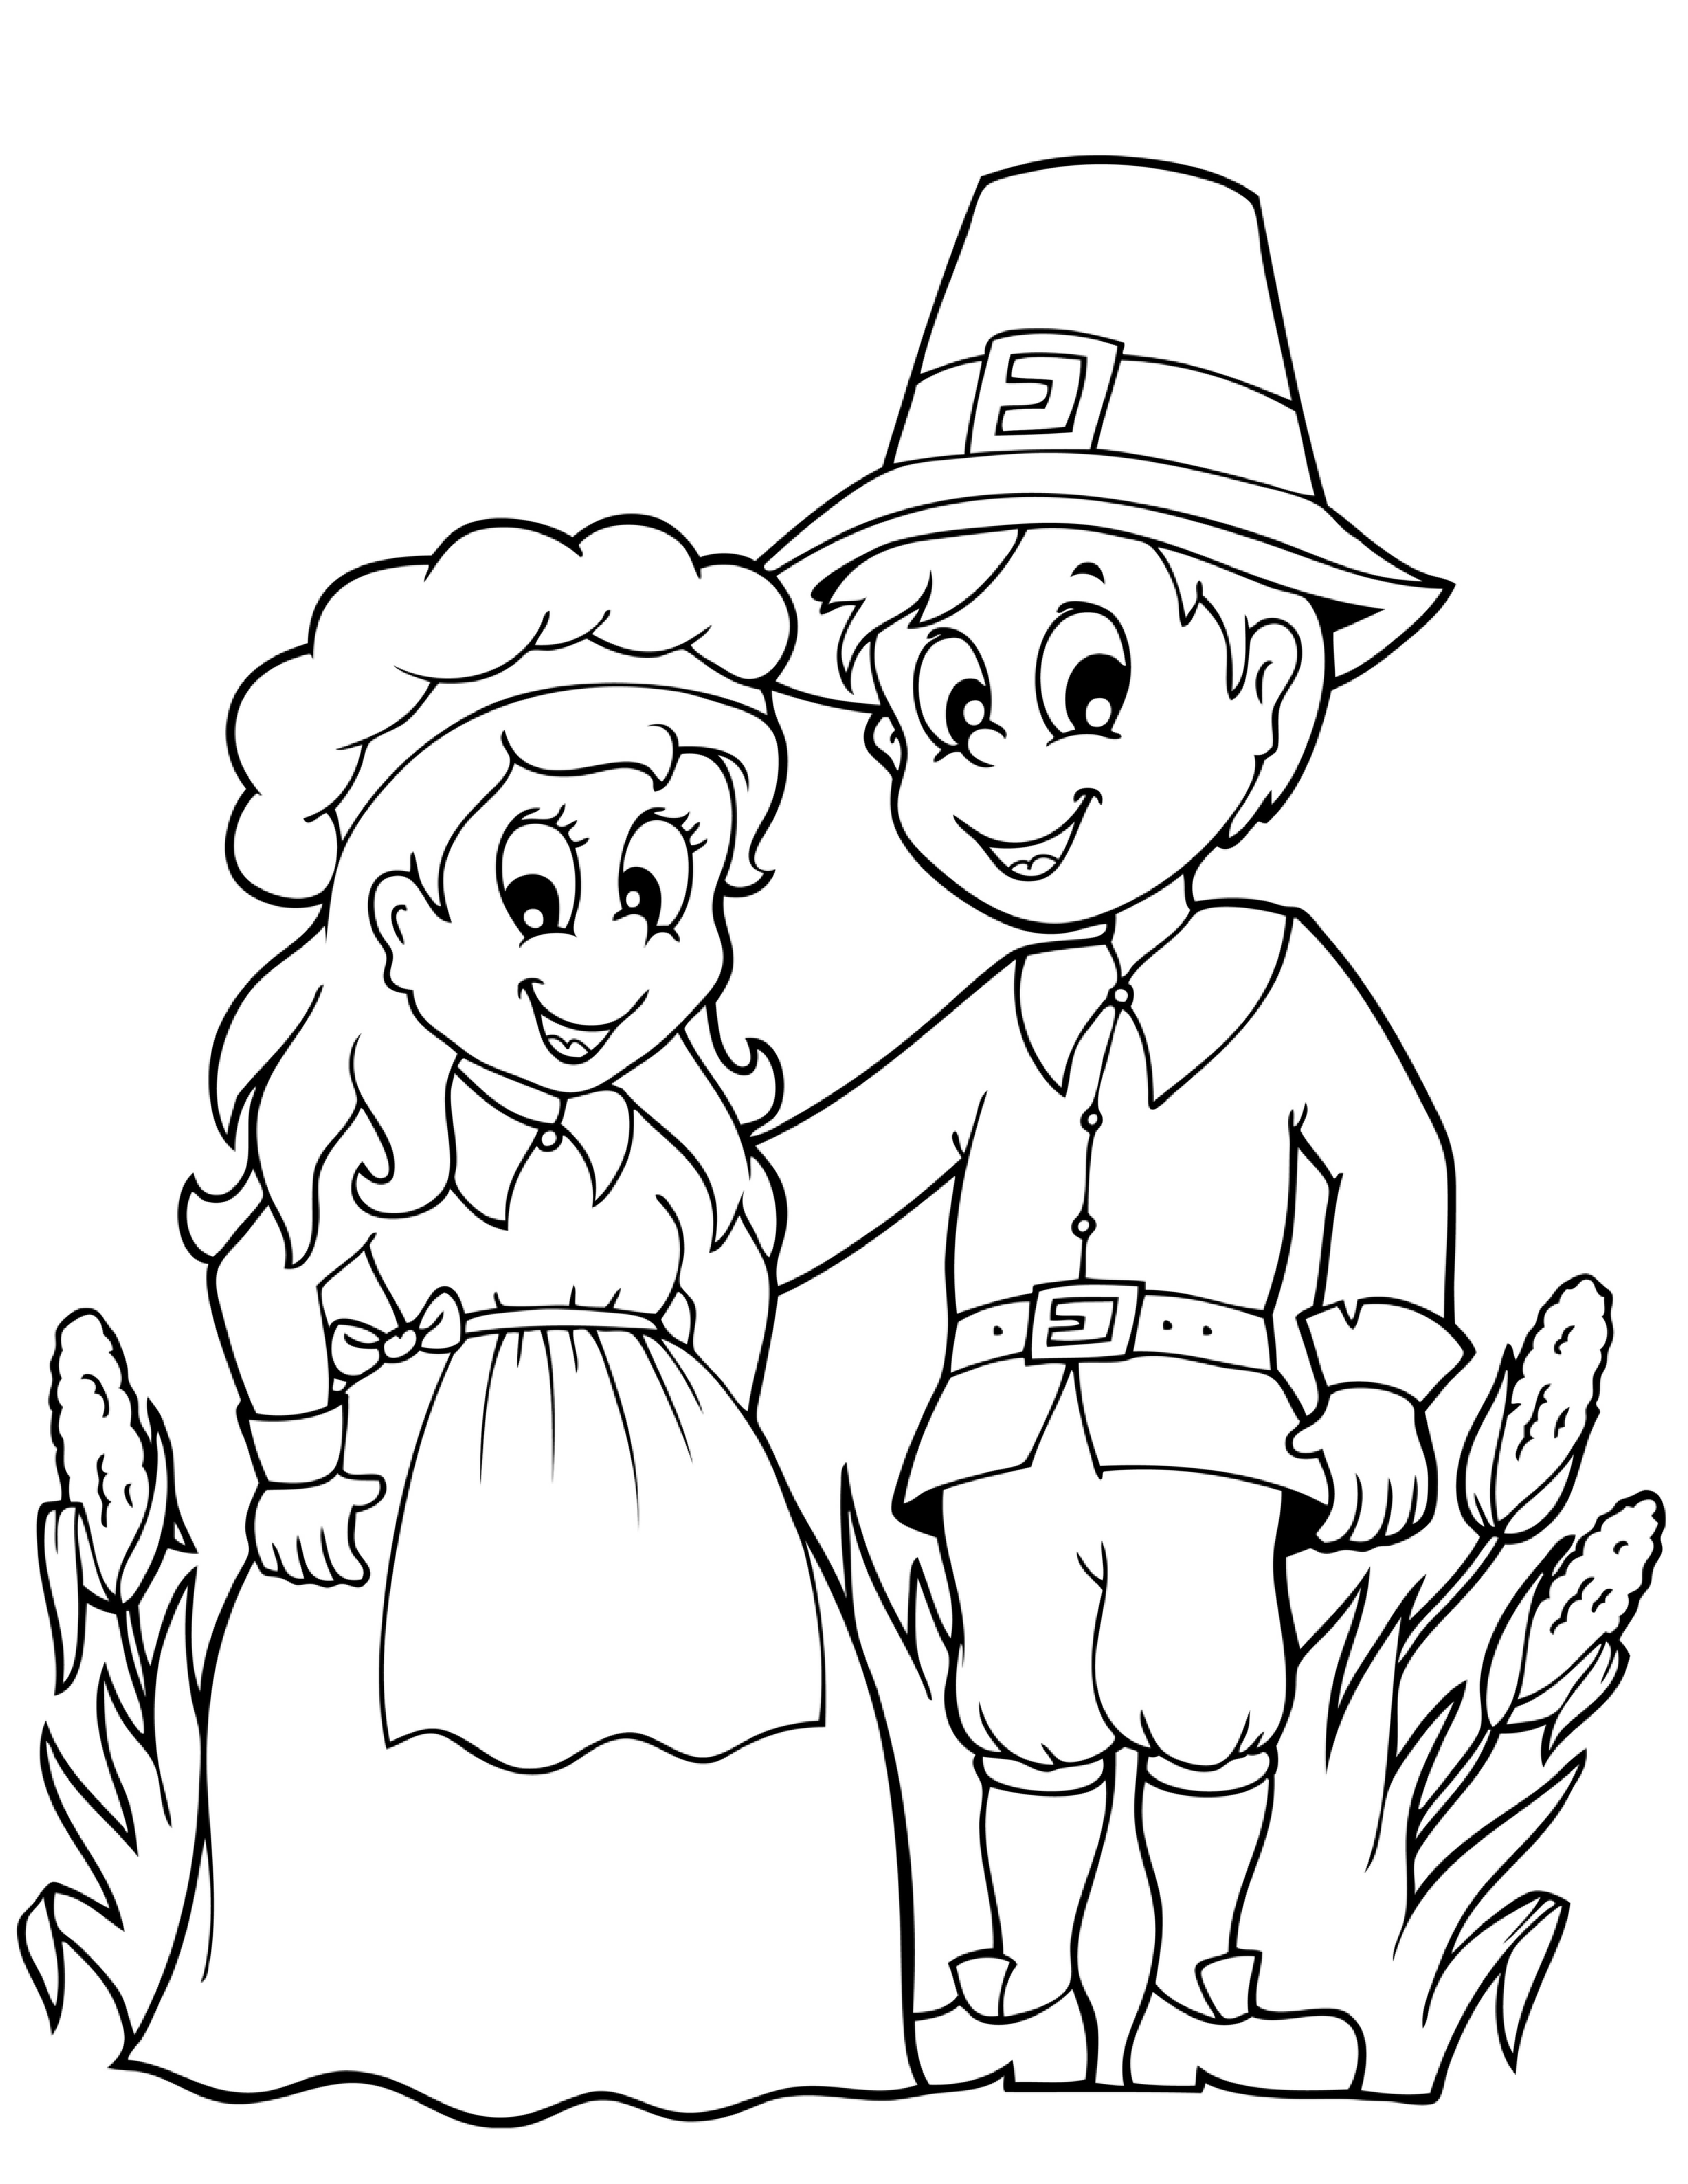 pilgrim boy and girl coloring pages pilgrim boy and girl carrying pumpkin and corns coloring coloring girl and boy pilgrim pages